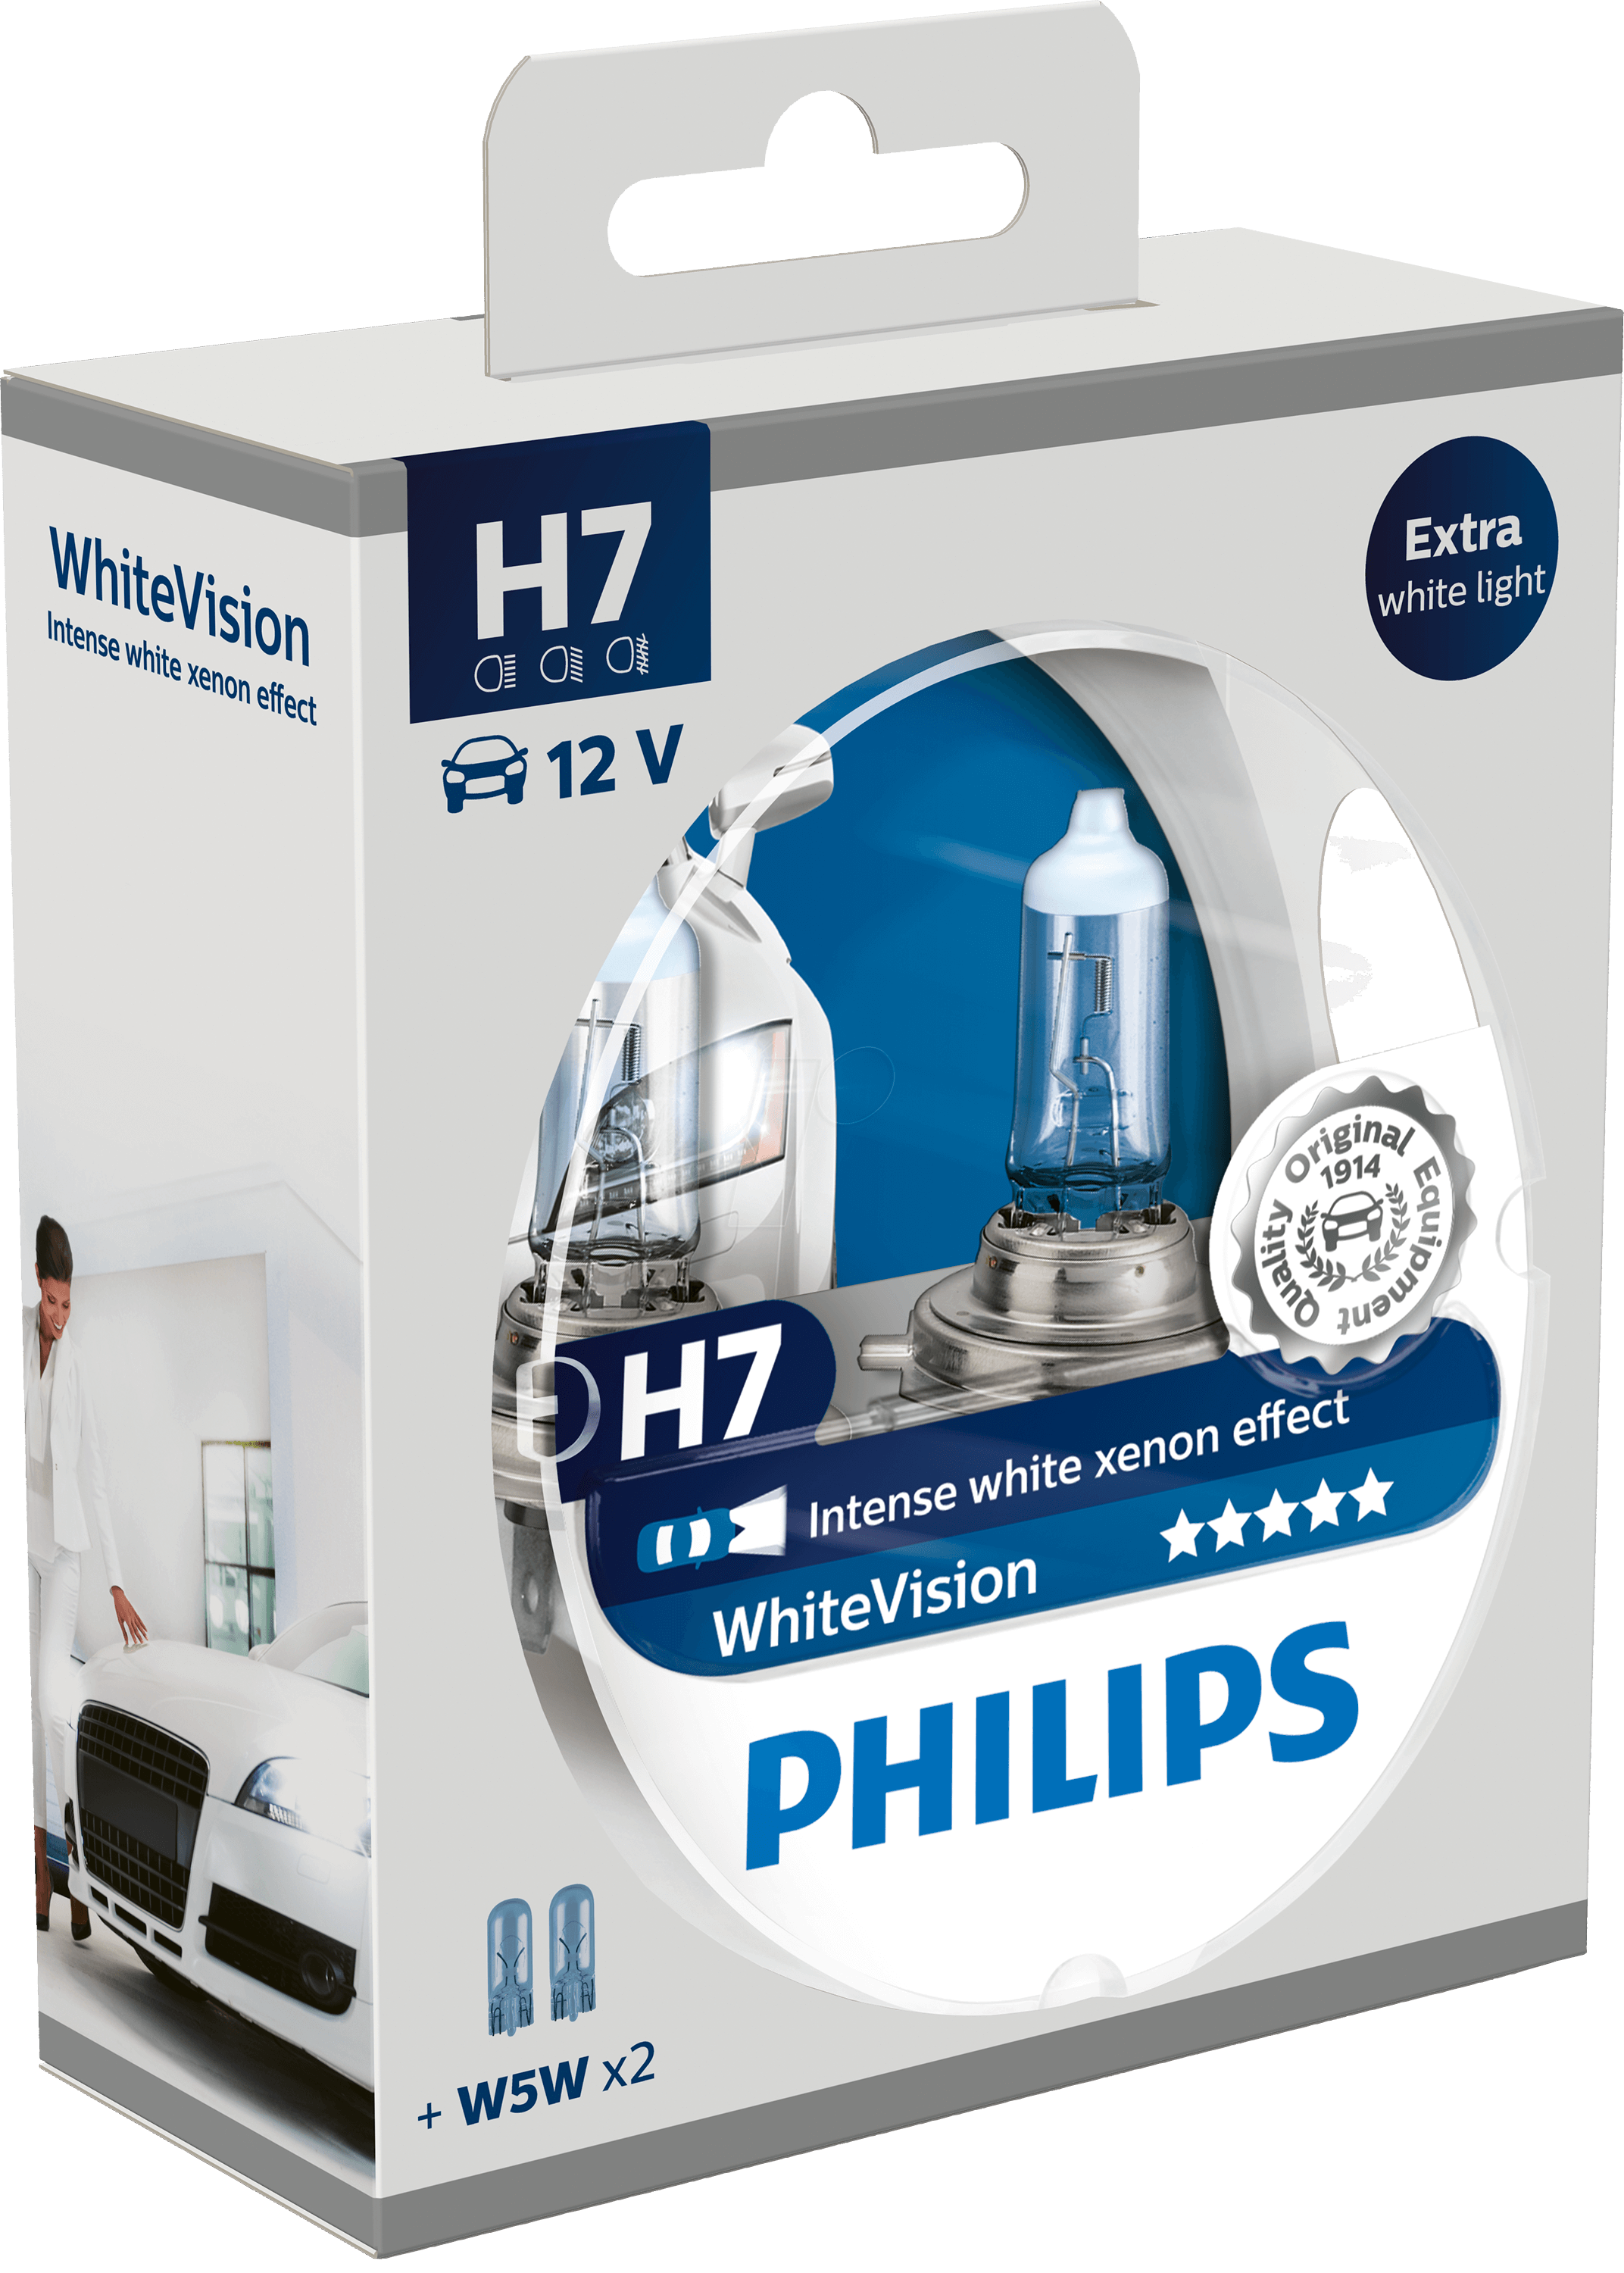 phi h7 white2 h7 headlight bulb philips white vision twin pack at reichelt elektronik. Black Bedroom Furniture Sets. Home Design Ideas